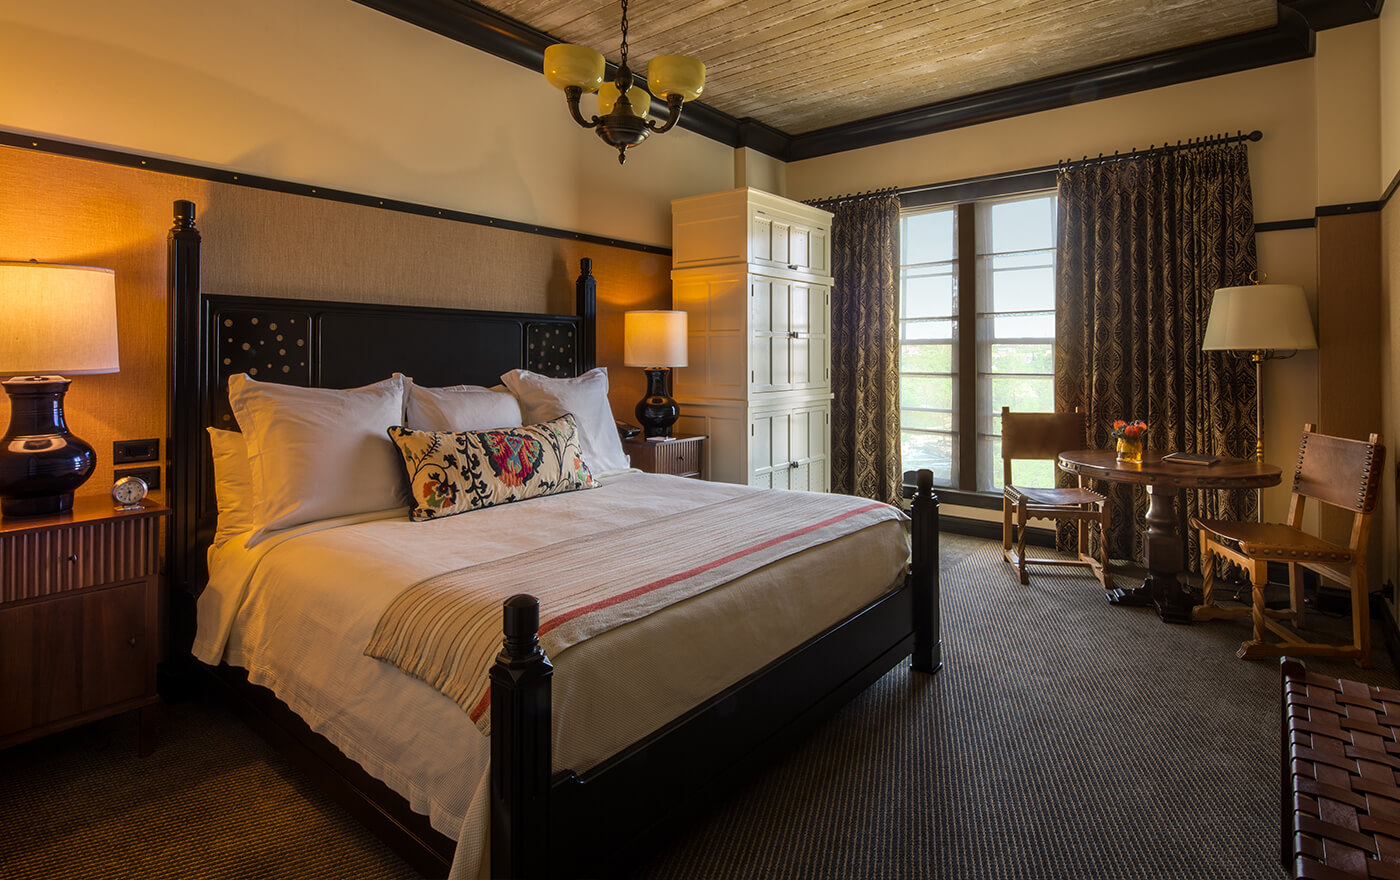 A picture of the bedroom of Hotel Emma's Classic room options. Pictured is a king size bed with two nightstands and two windows.